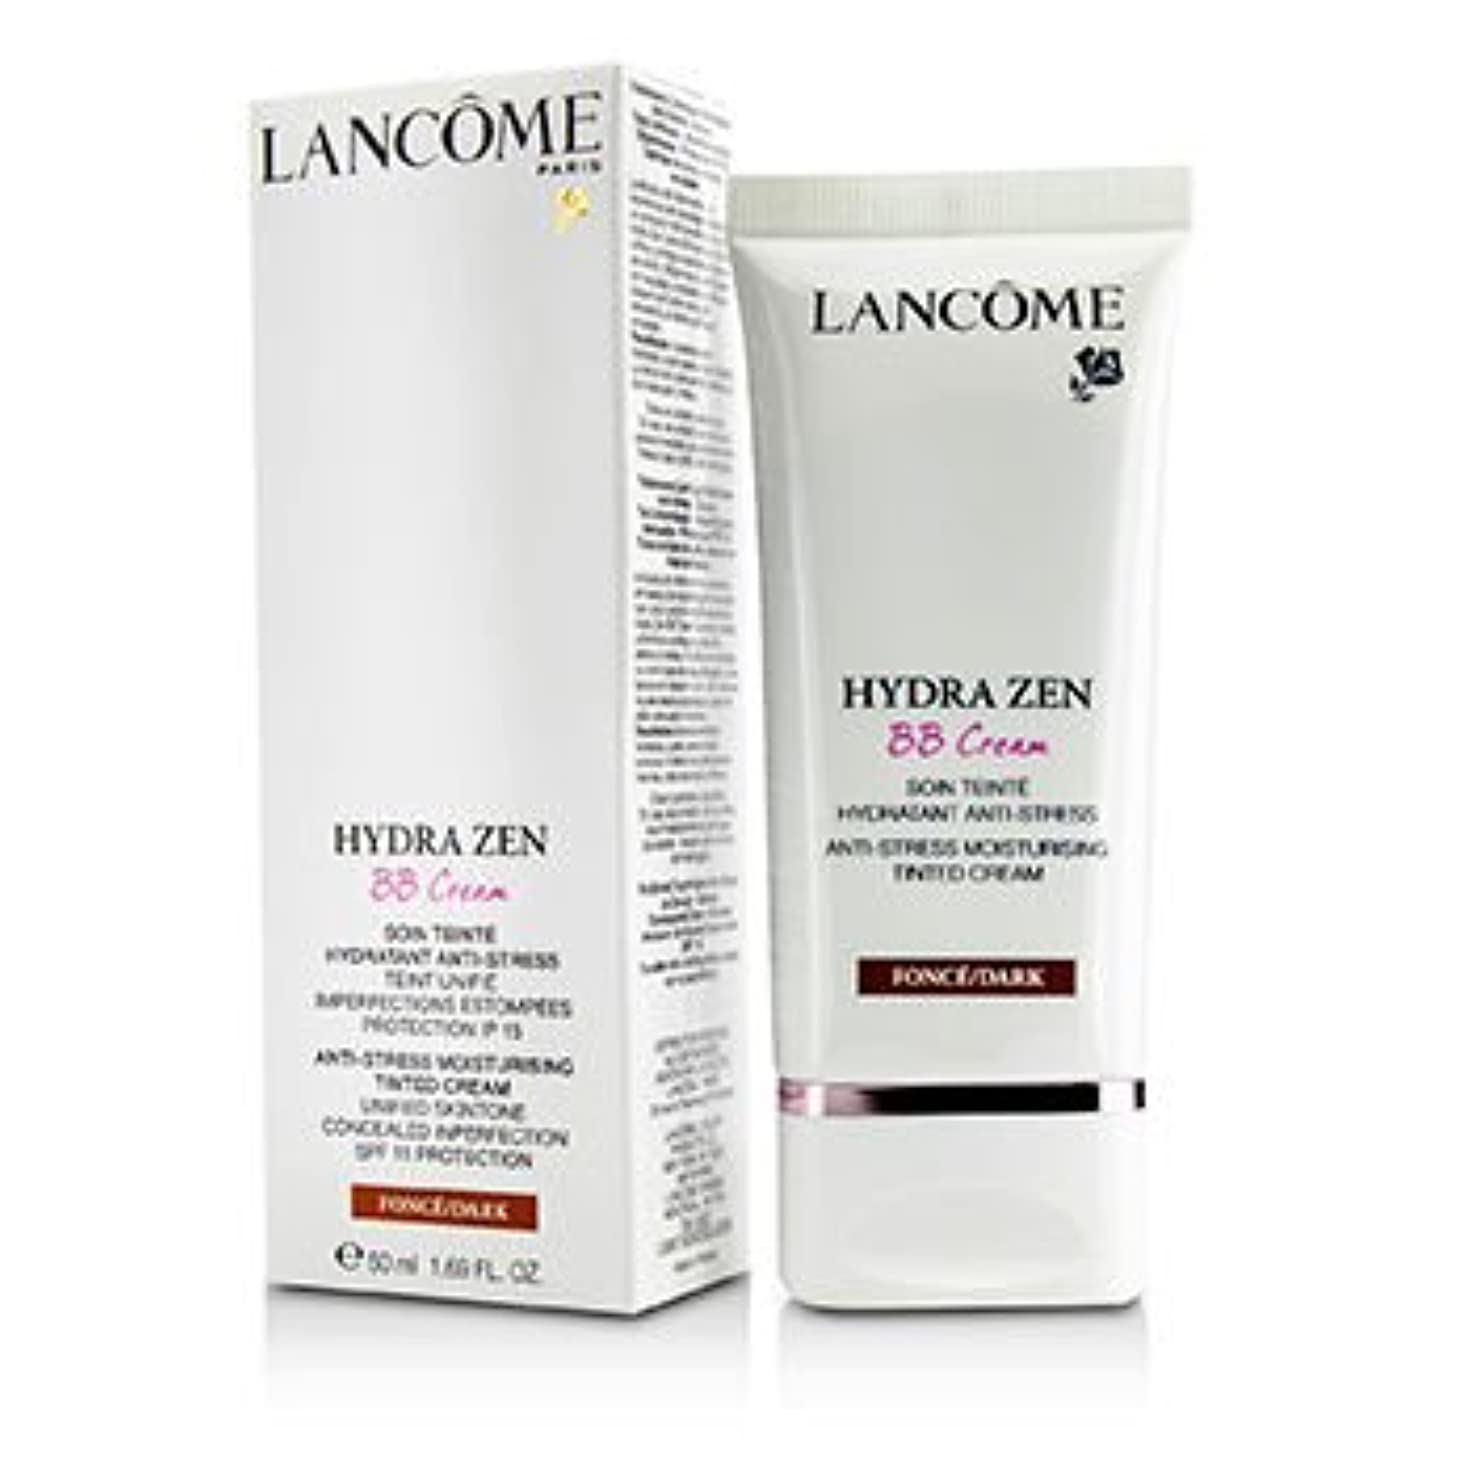 [Lancome] Lancome Hydra Zen (BB Cream) Anti-Stress Moisturising Tinted Cream SPF 15 - # Dark 50ml/1.69oz